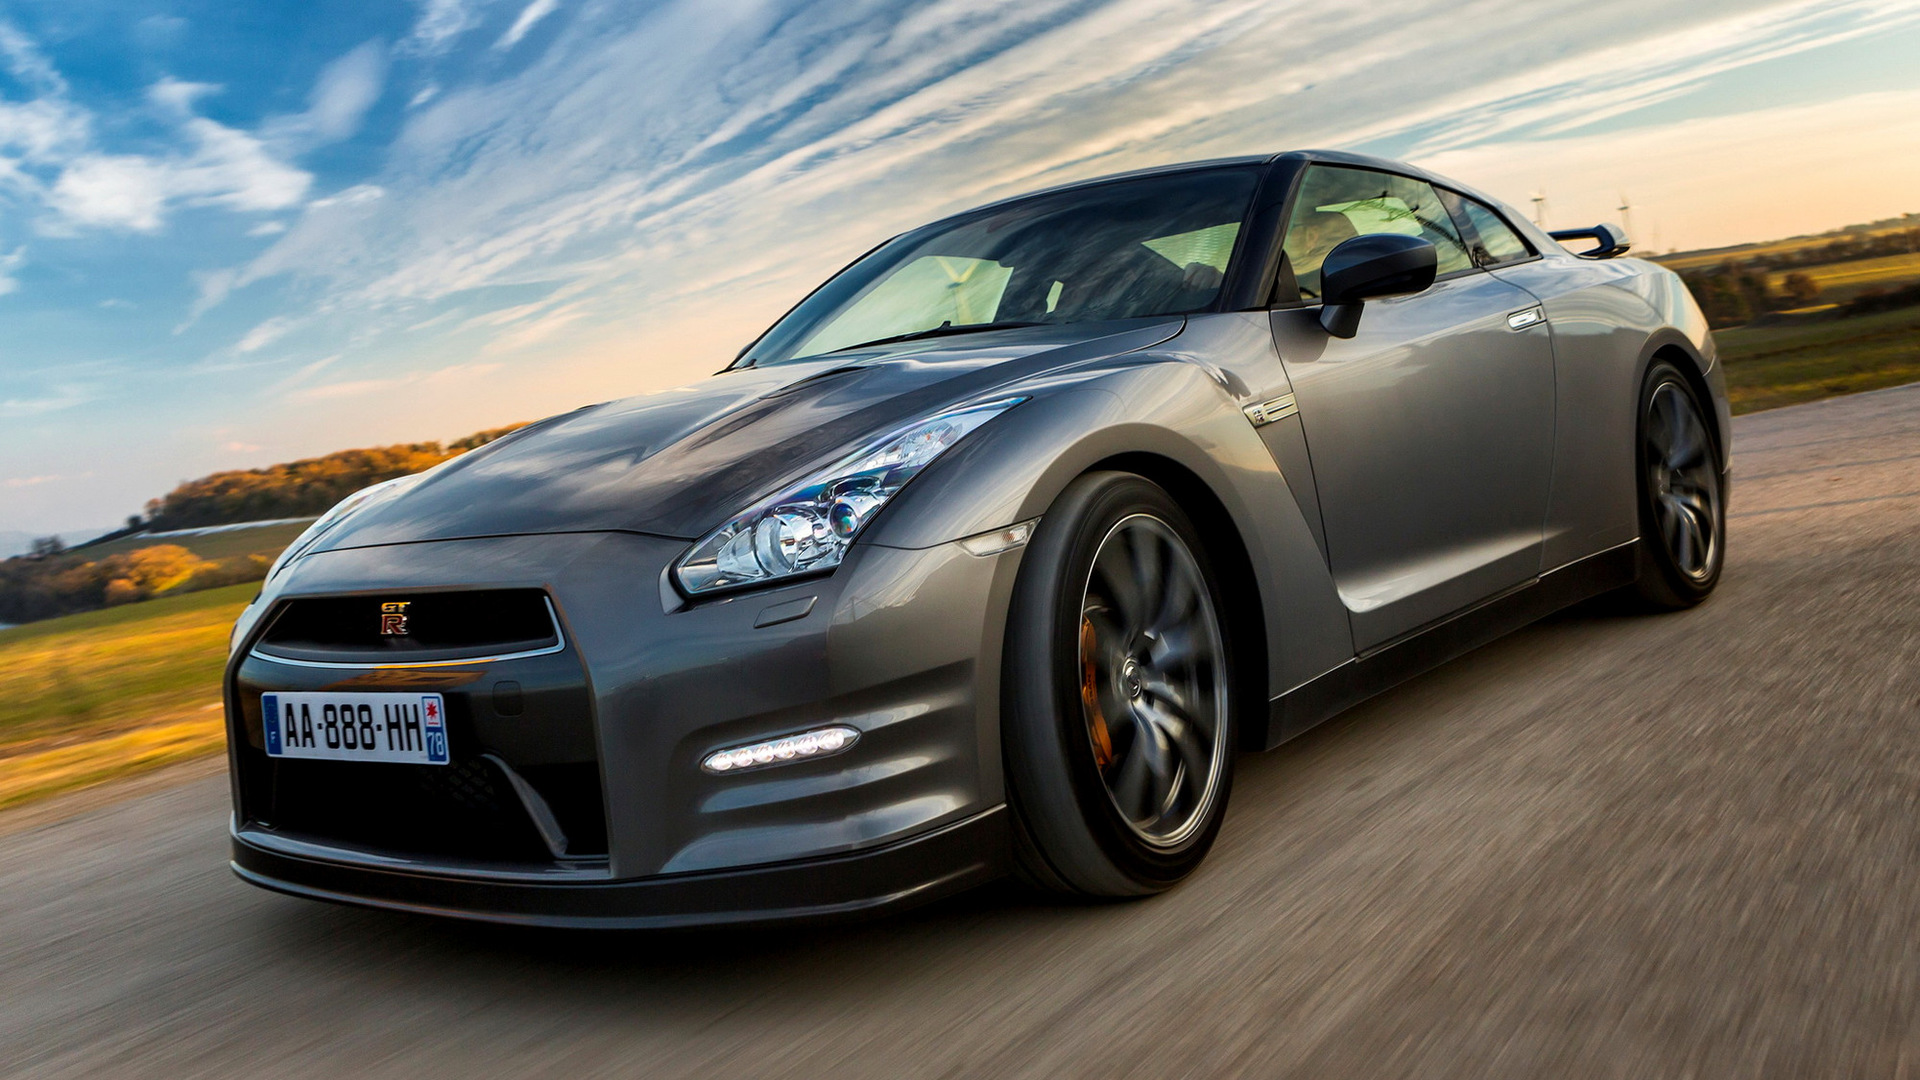 nissan gt r premium edition 2012 wallpapers and hd. Black Bedroom Furniture Sets. Home Design Ideas